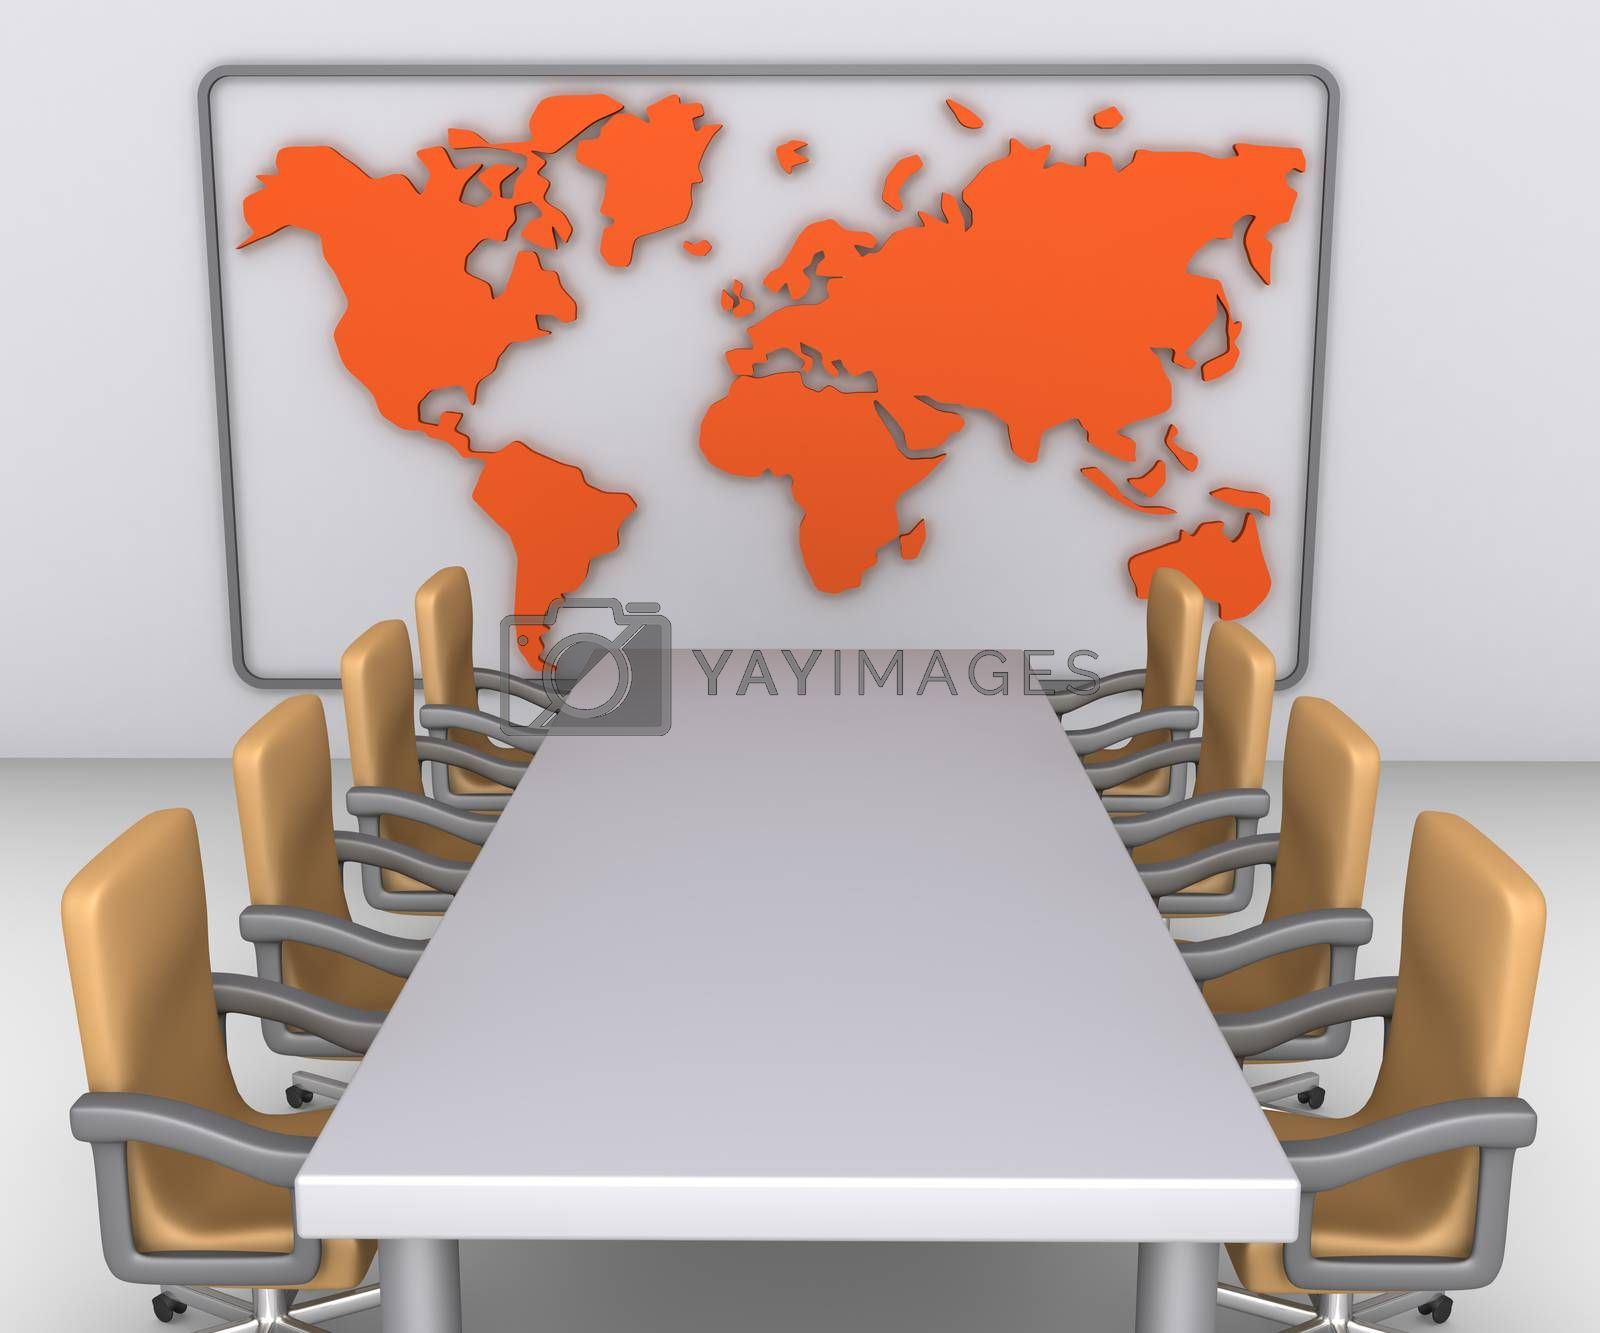 Table and empty armchairs are in front of wall with the world map on it